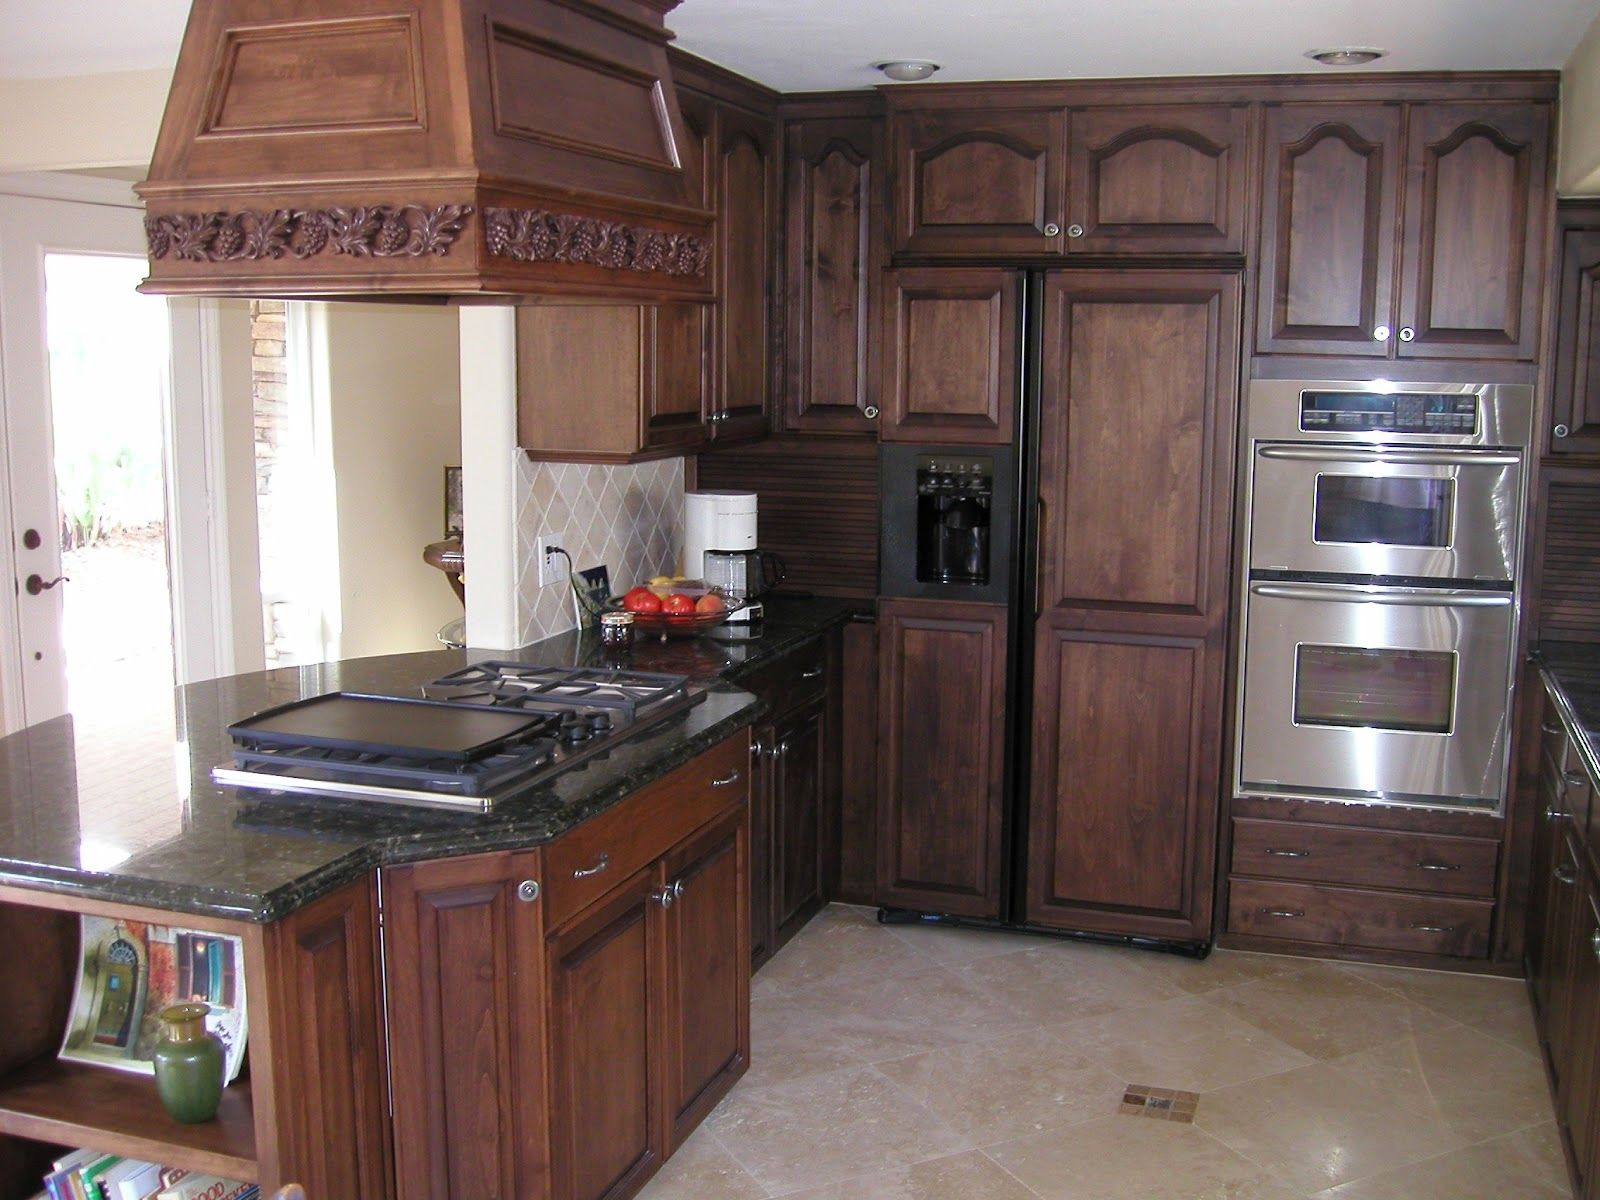 How To Budget For Home Renovations Restaining Kitchen Cabinets Oak Kitchen Cabinets Oak Kitchen